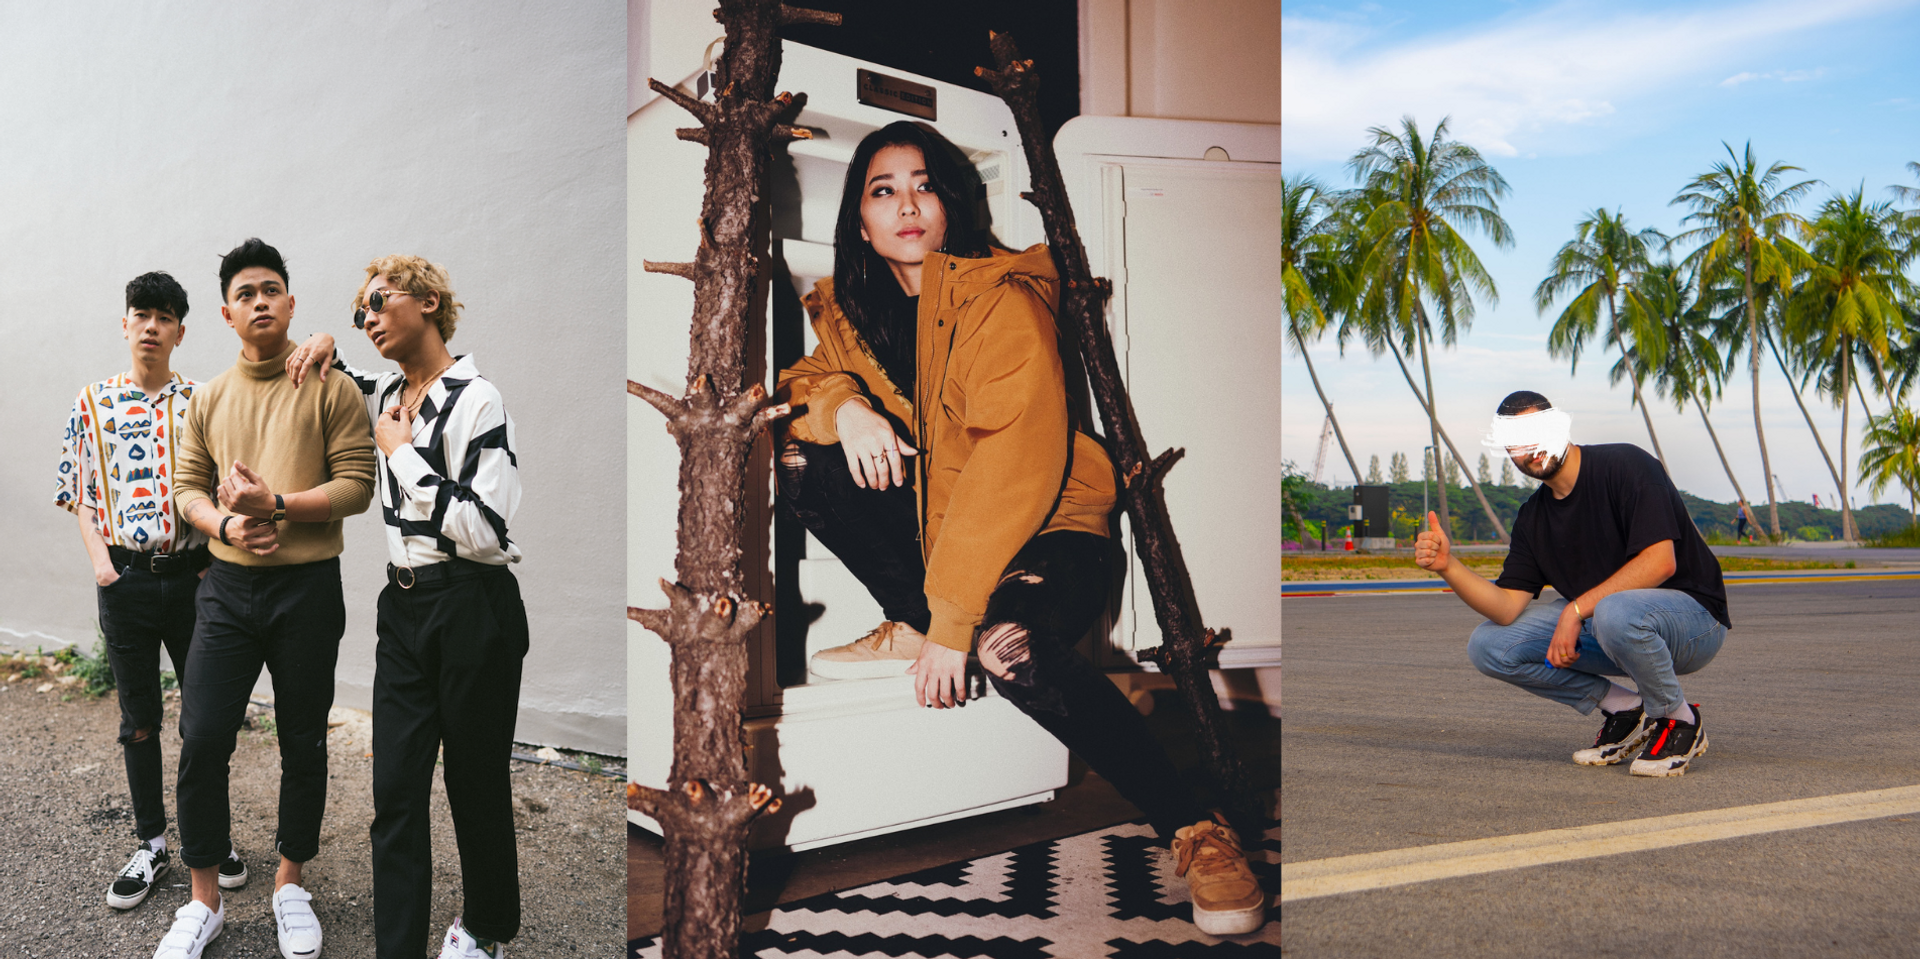 brb., Duumu, and Elsa Mickayla to perform at debut edition of Life's A Beach mini-festival, presented by Bandwagon and EBX Live!